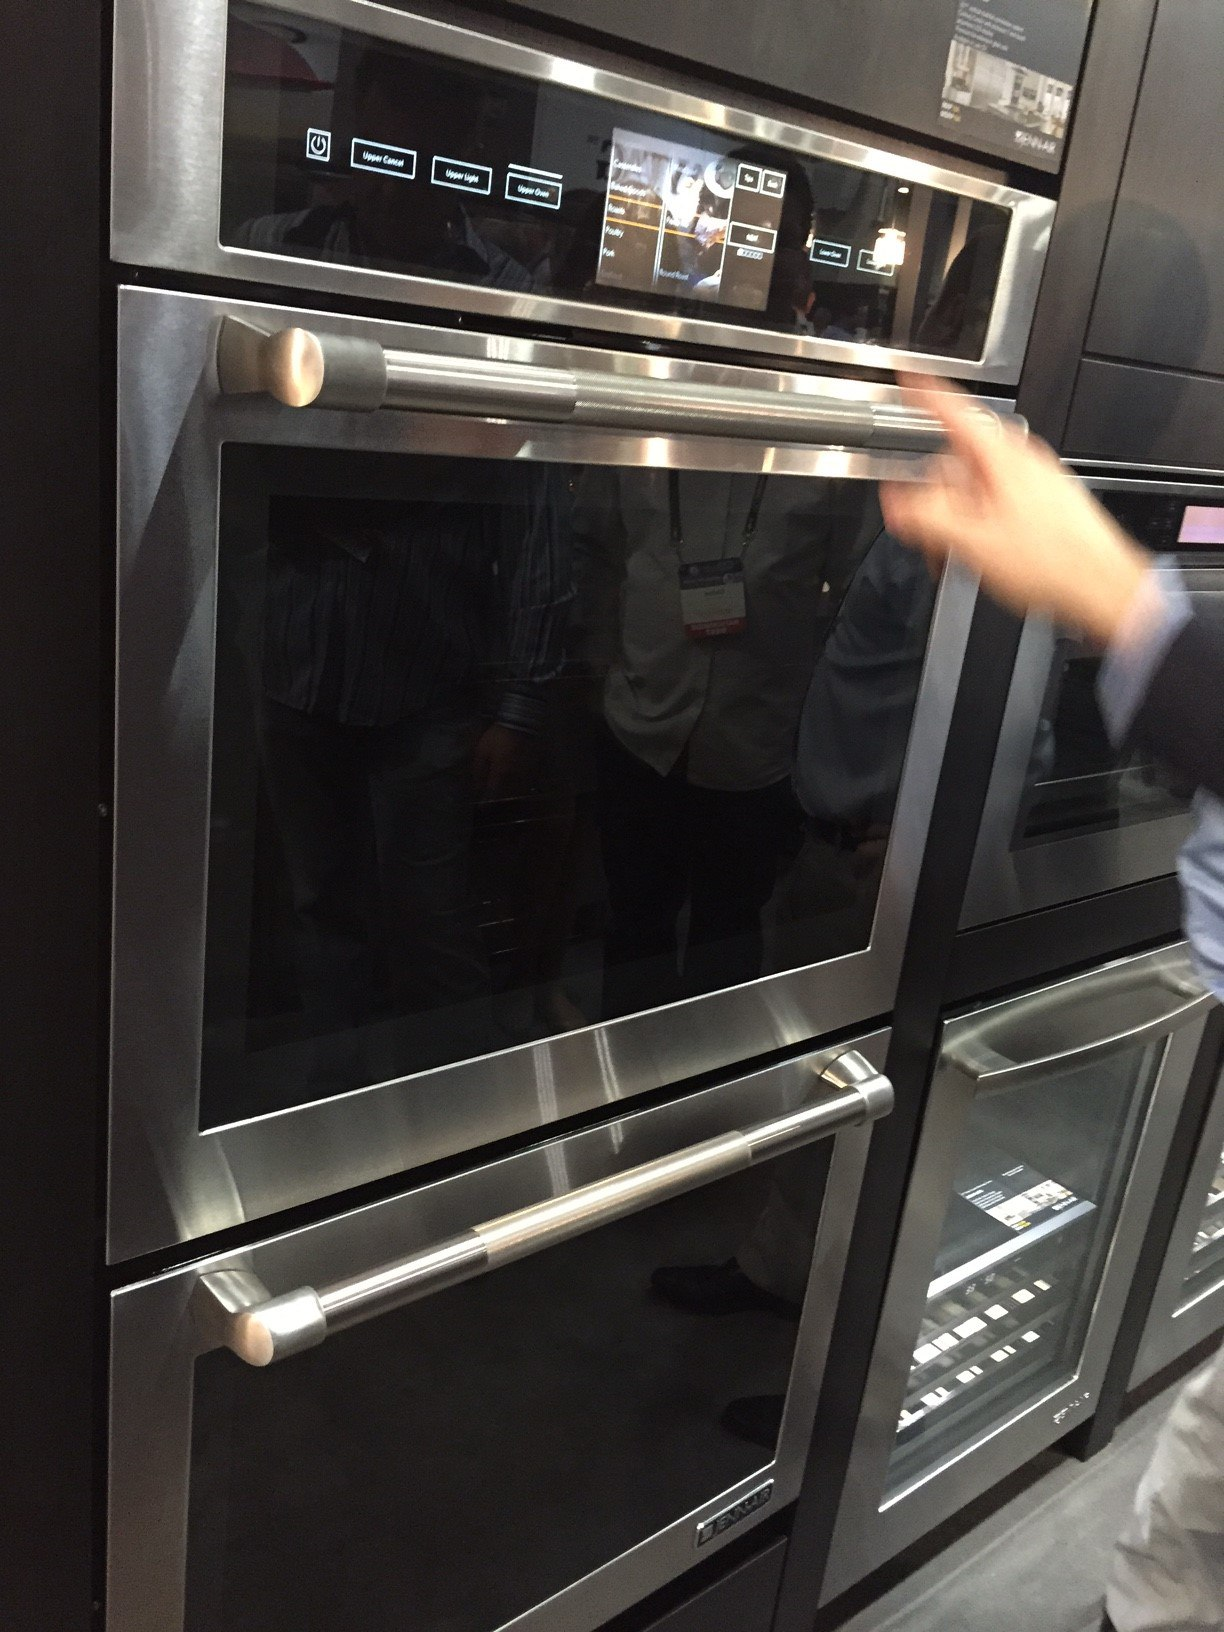 Jenn-Air-Wi-Fi-Enabled-Wall-Oven-Copy